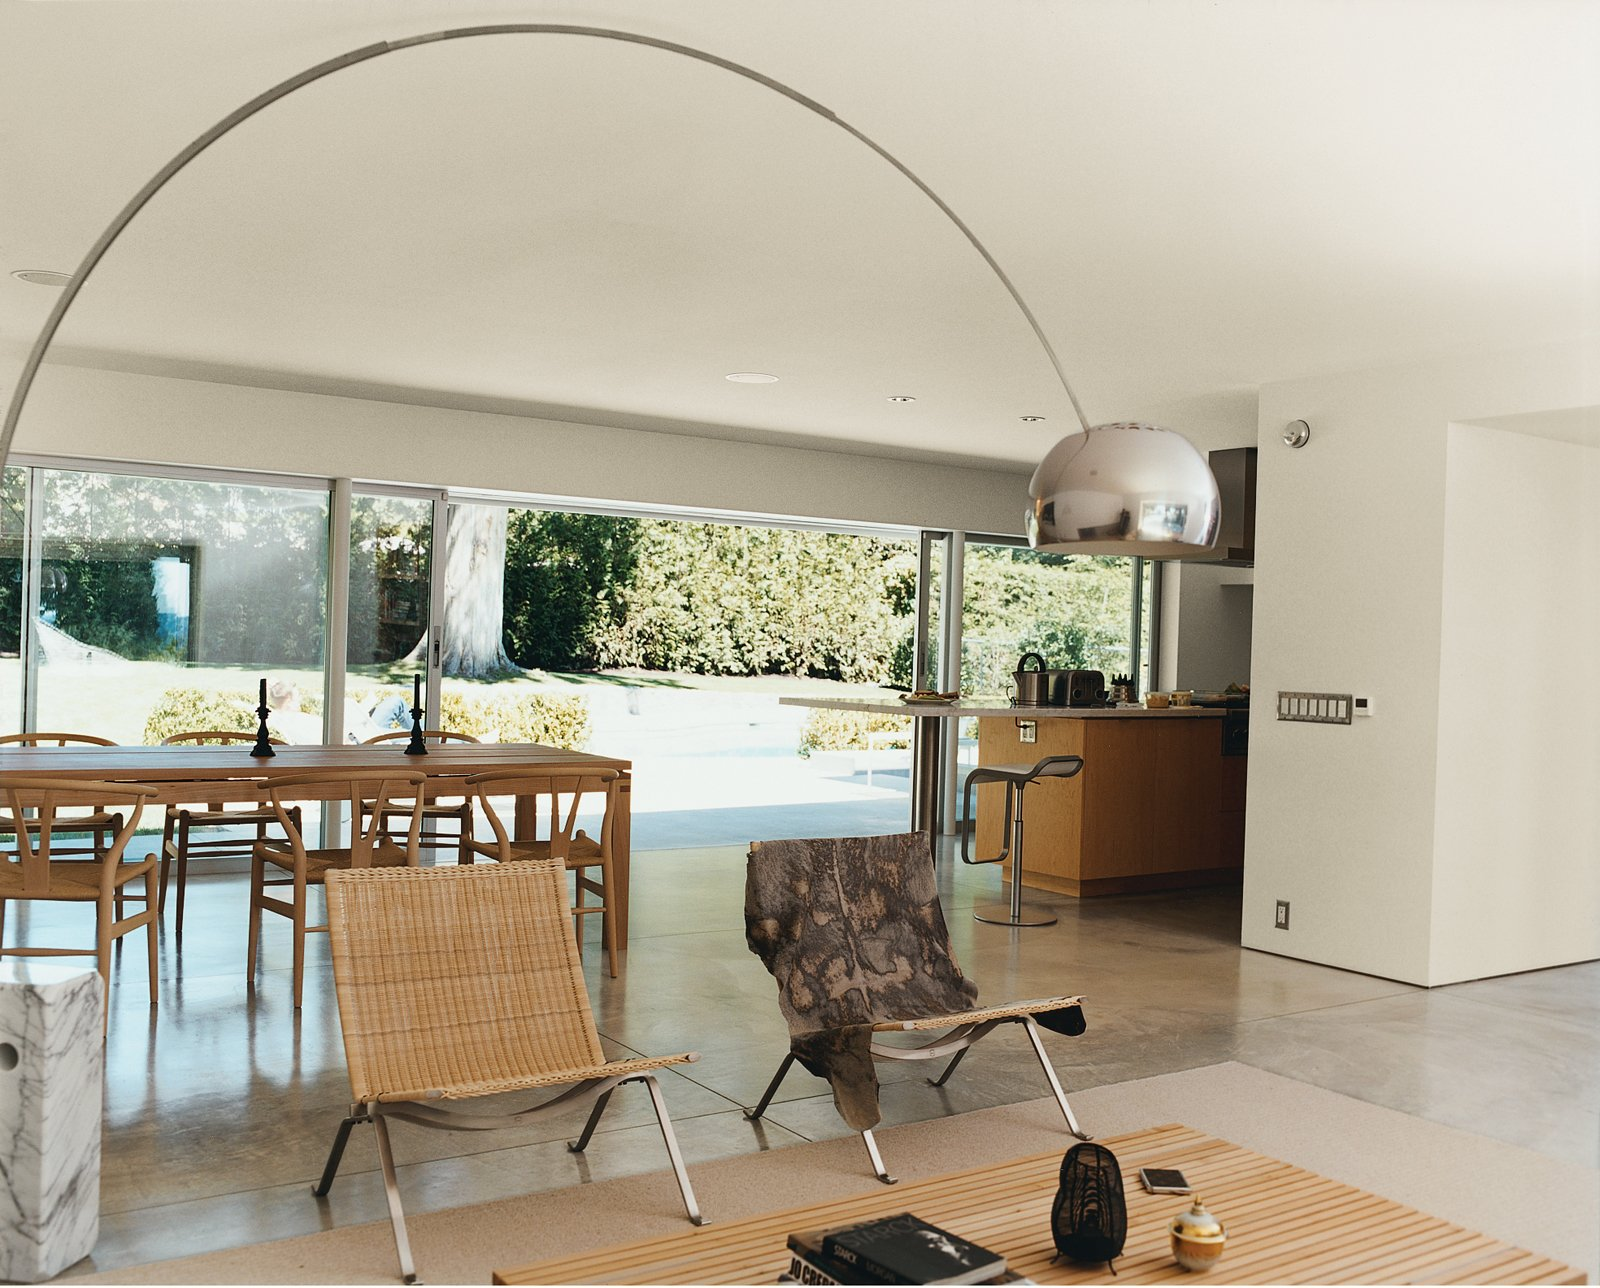 A 14-foot-wide opening at the rear of the house contributes, along with the concrete flooring, to an almost seamless transition from indoors to the patio. A spate of mid-century furnishings includes chairs by Hans Wegner and Poul Kjærholm and an Achille Castiglioni Arco lamp.  Photo 2 of 13 in On the Level